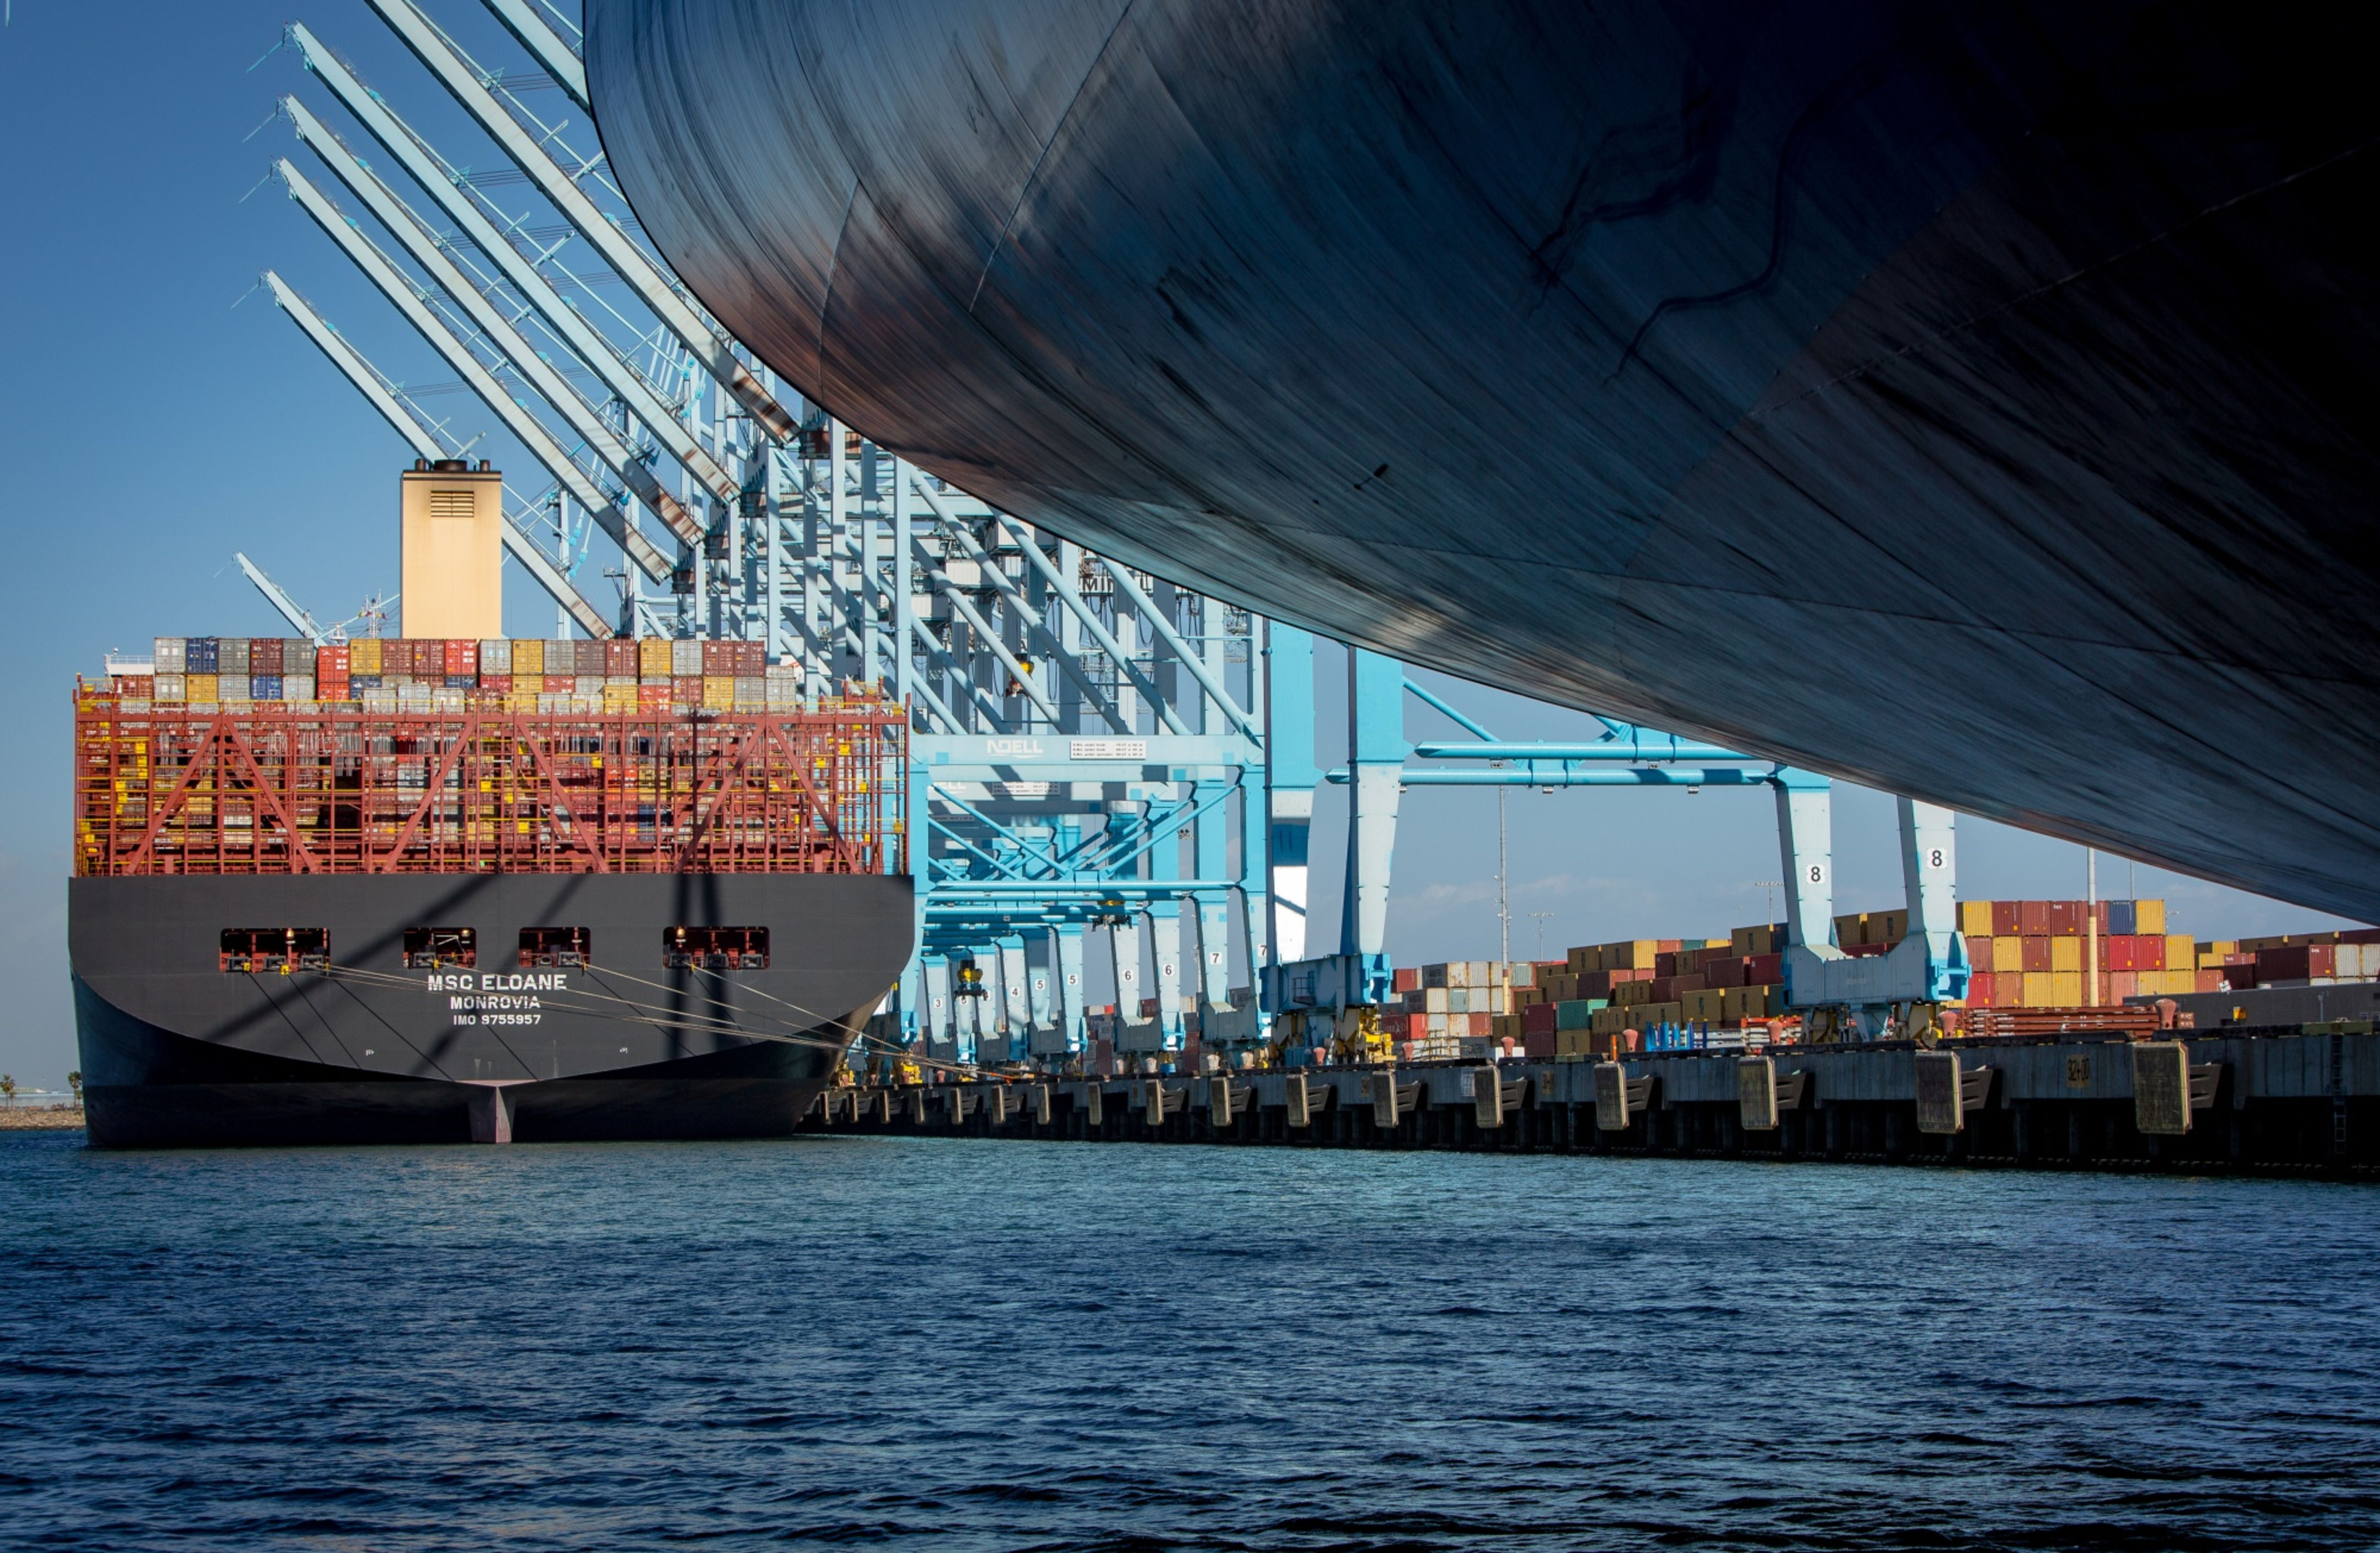 The largest container ship to ever call in the United States, the Mediterranean Shipping Company's Eloane makes berth at the Port of Los Angeles.